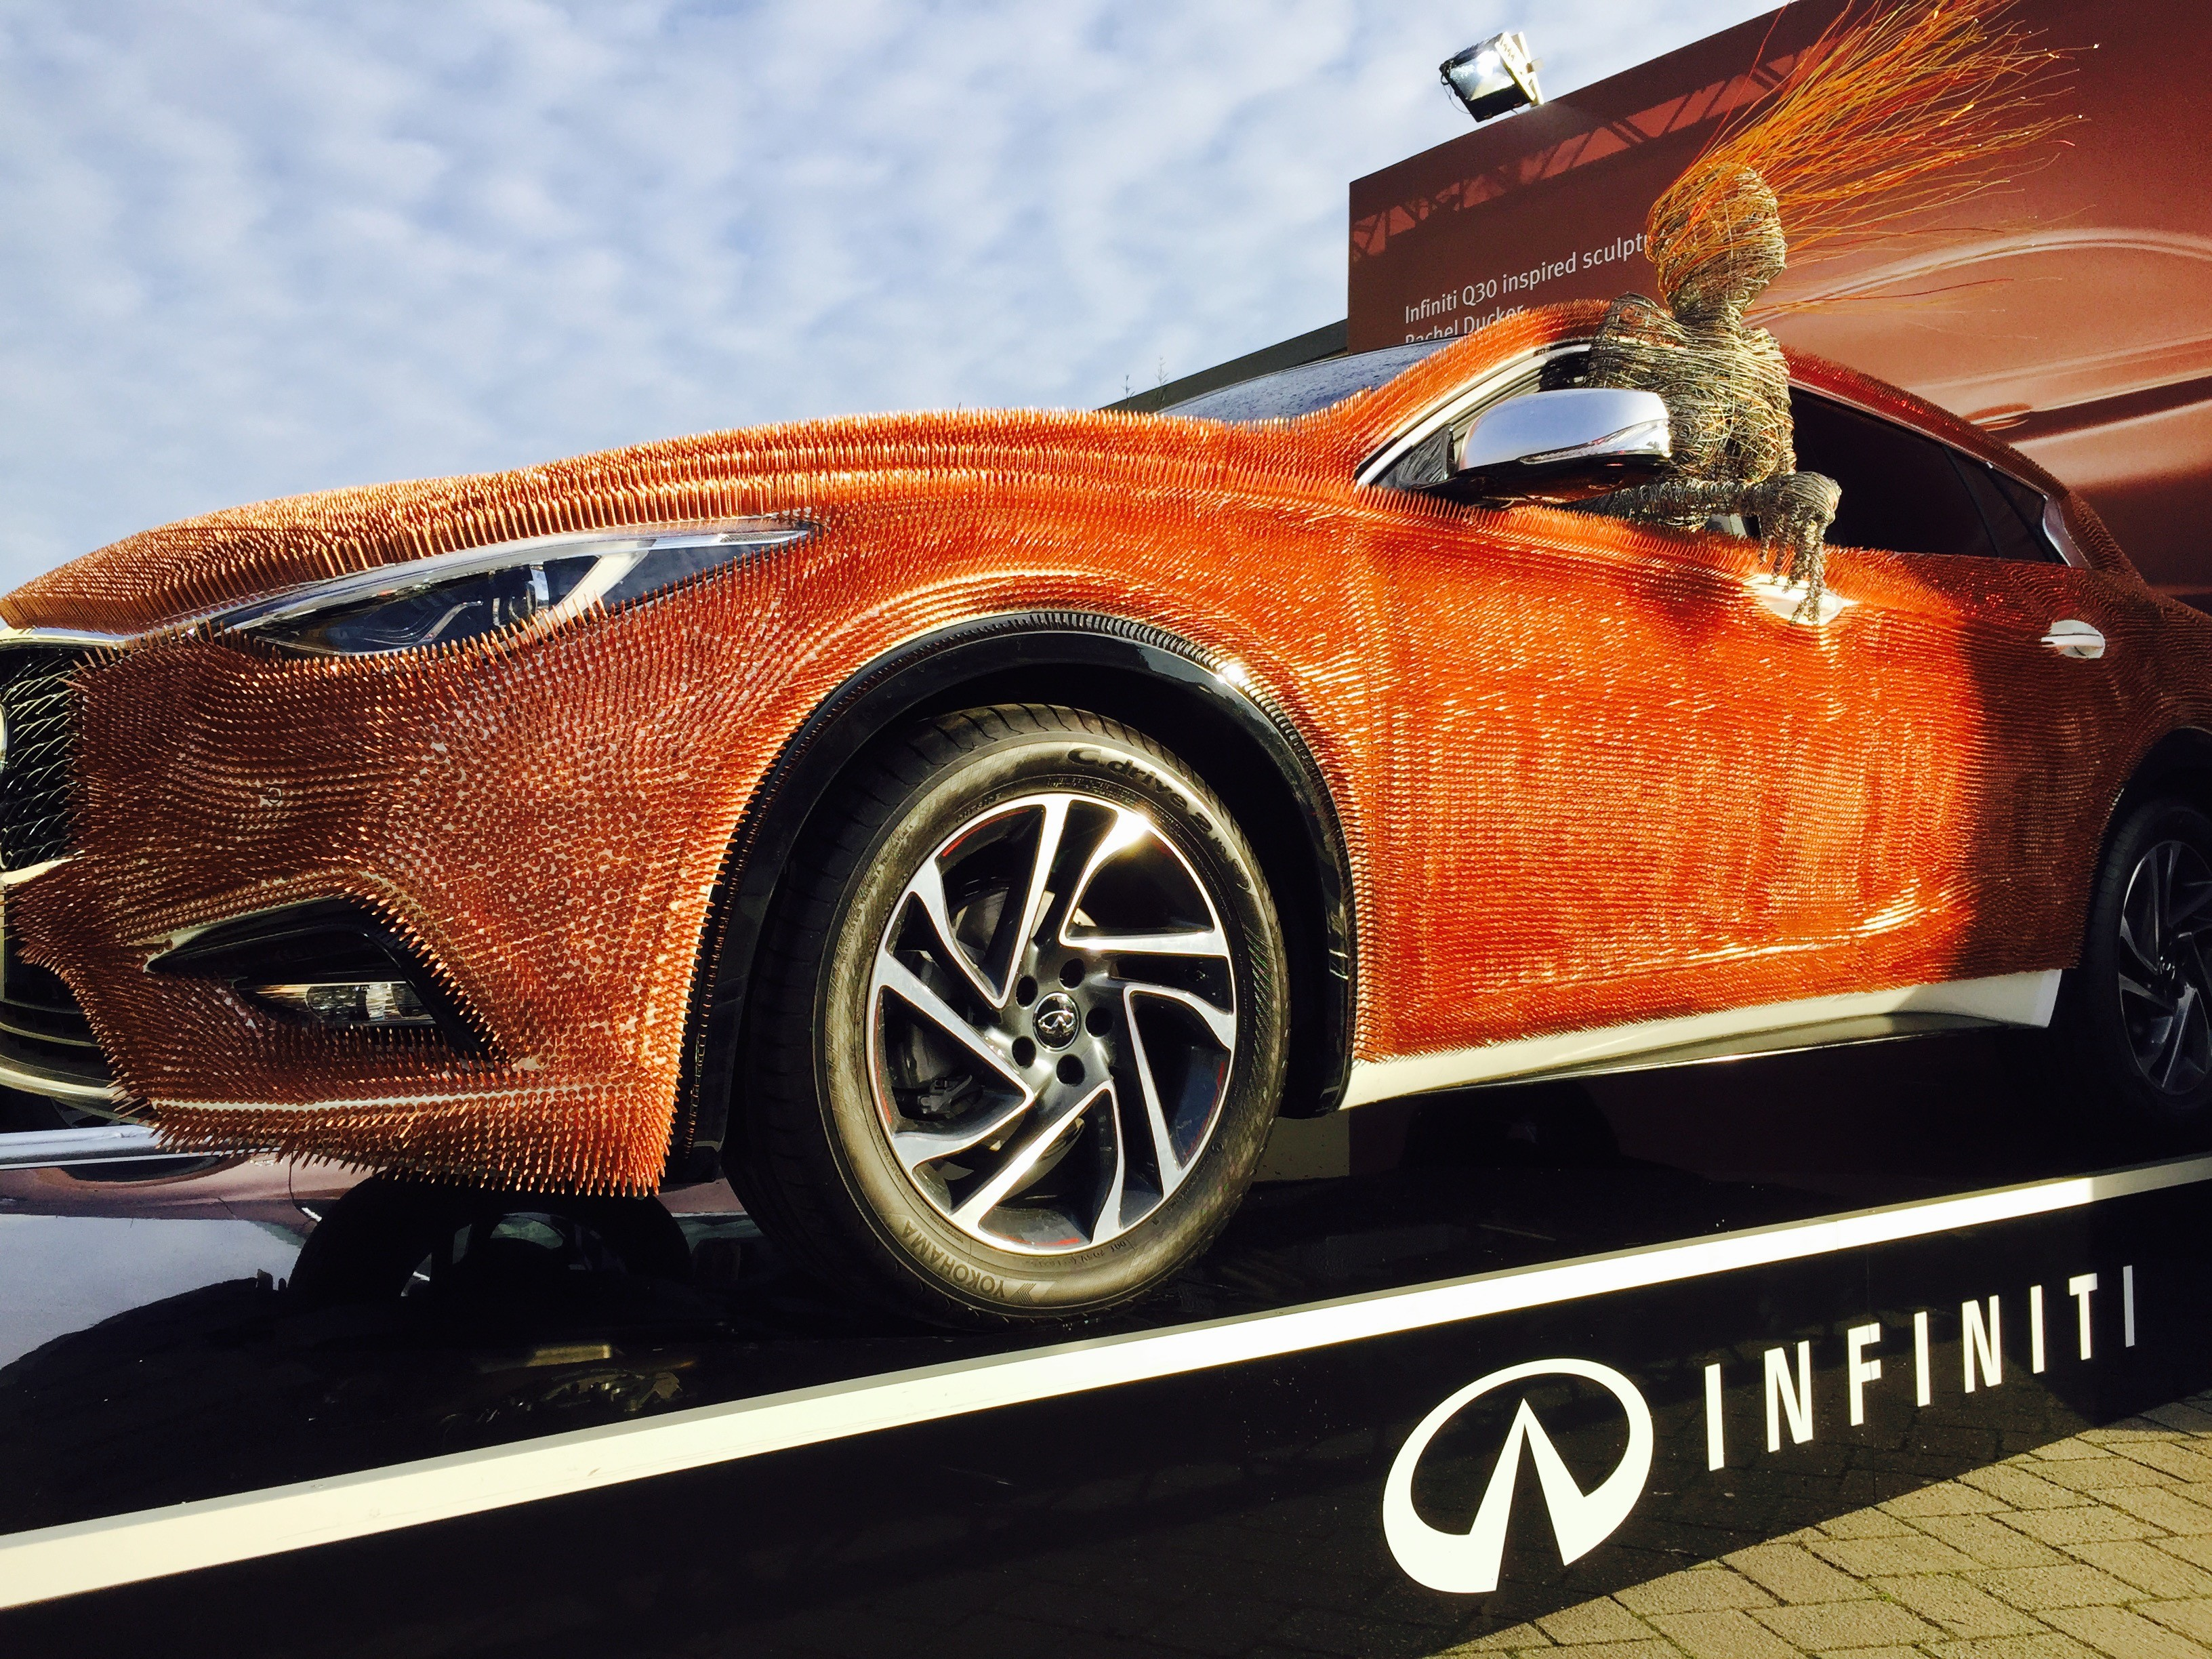 Infiniti Makes An Impression At The London Art Fair With